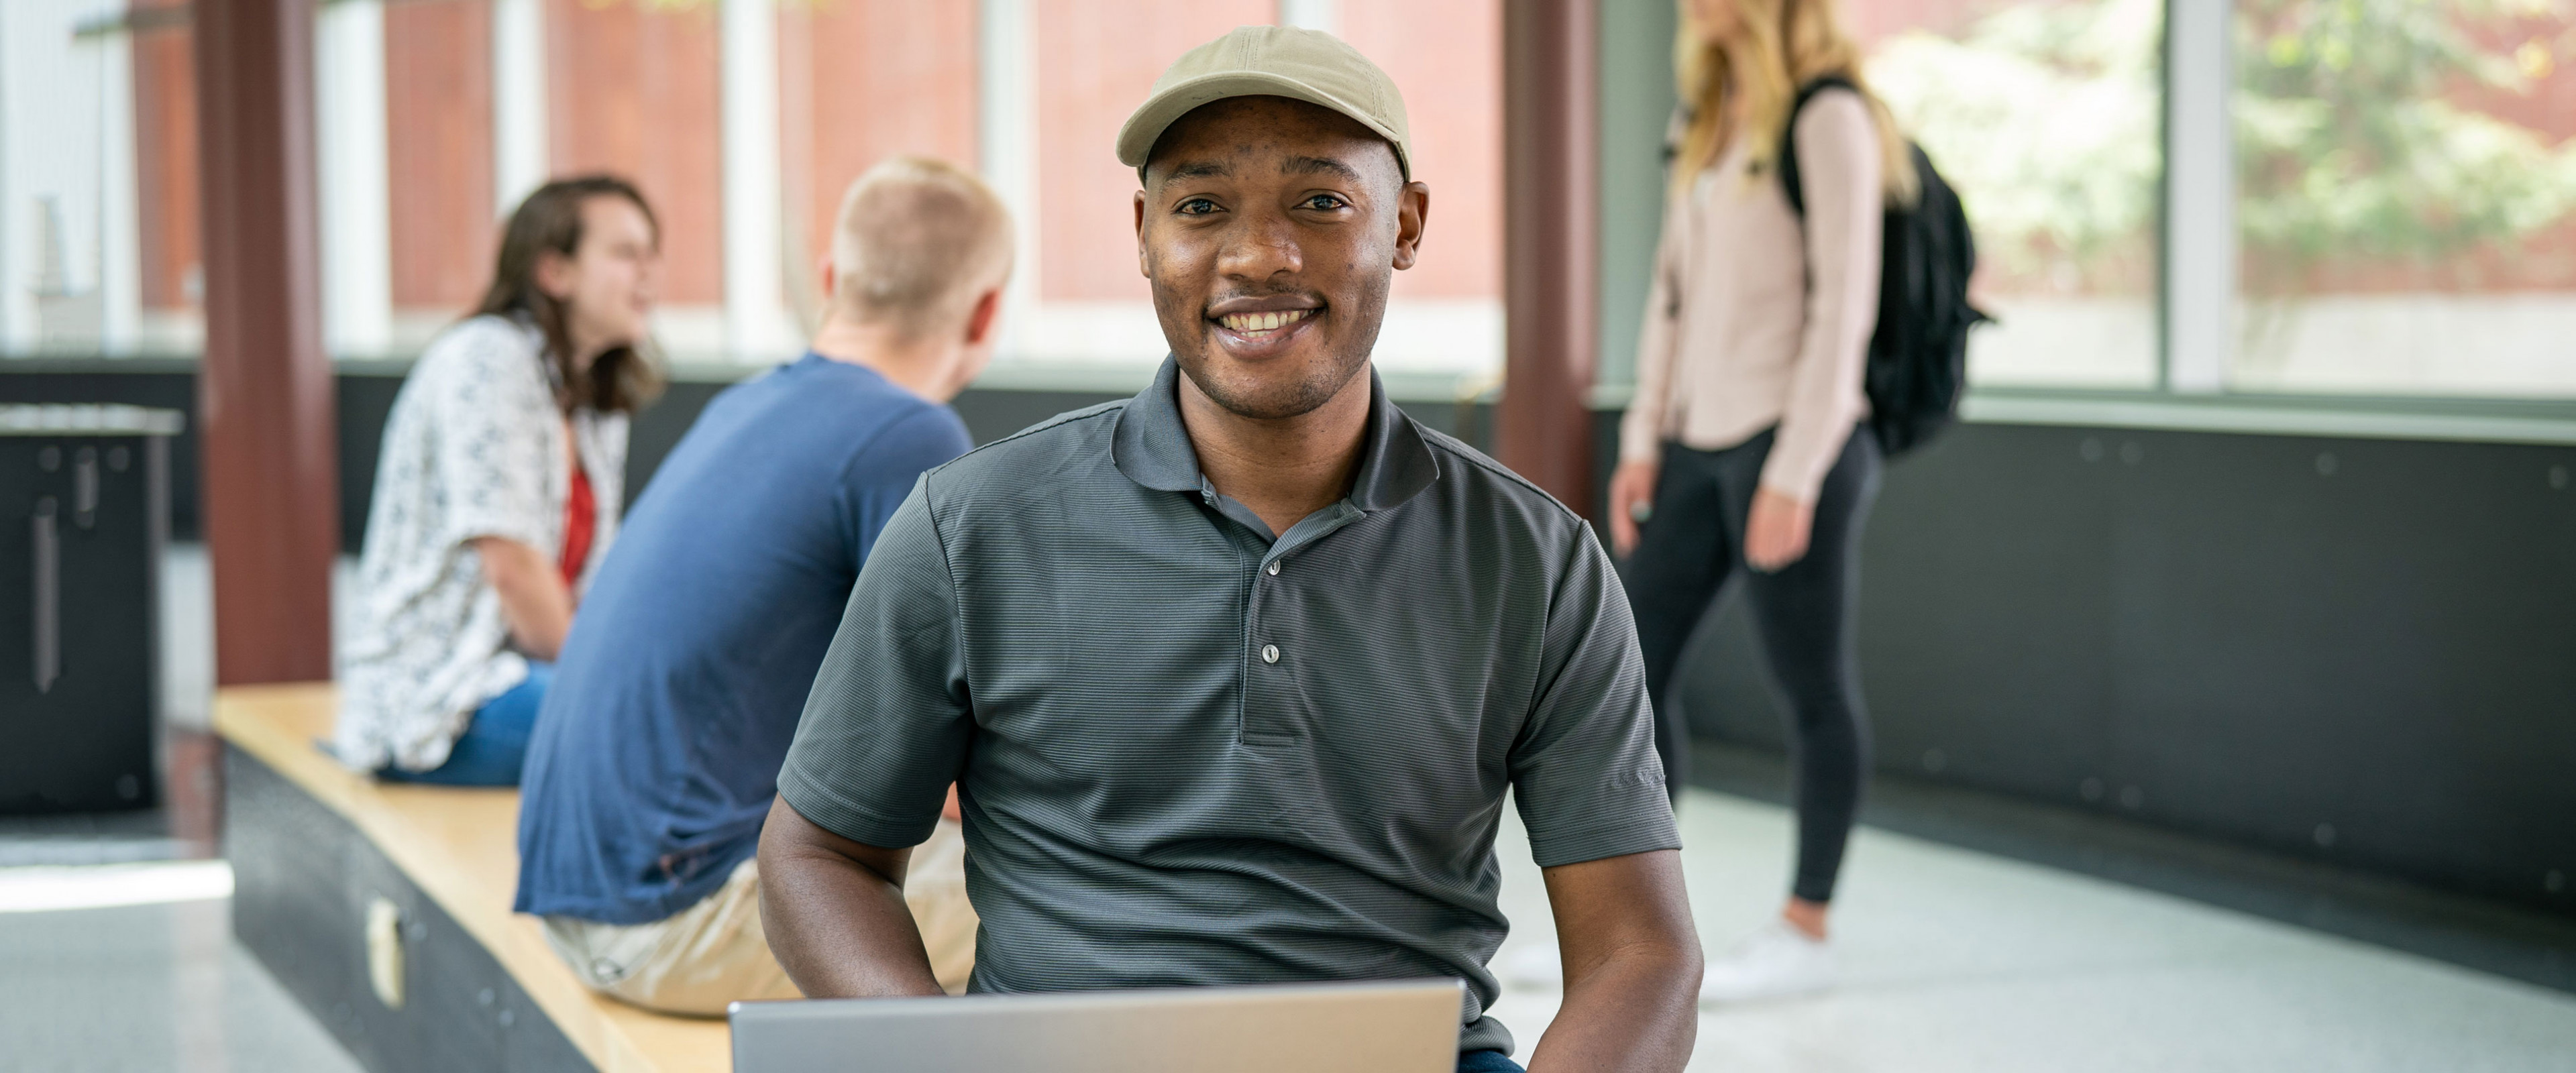 Smiling student sitting in Floyd Hall with laptop